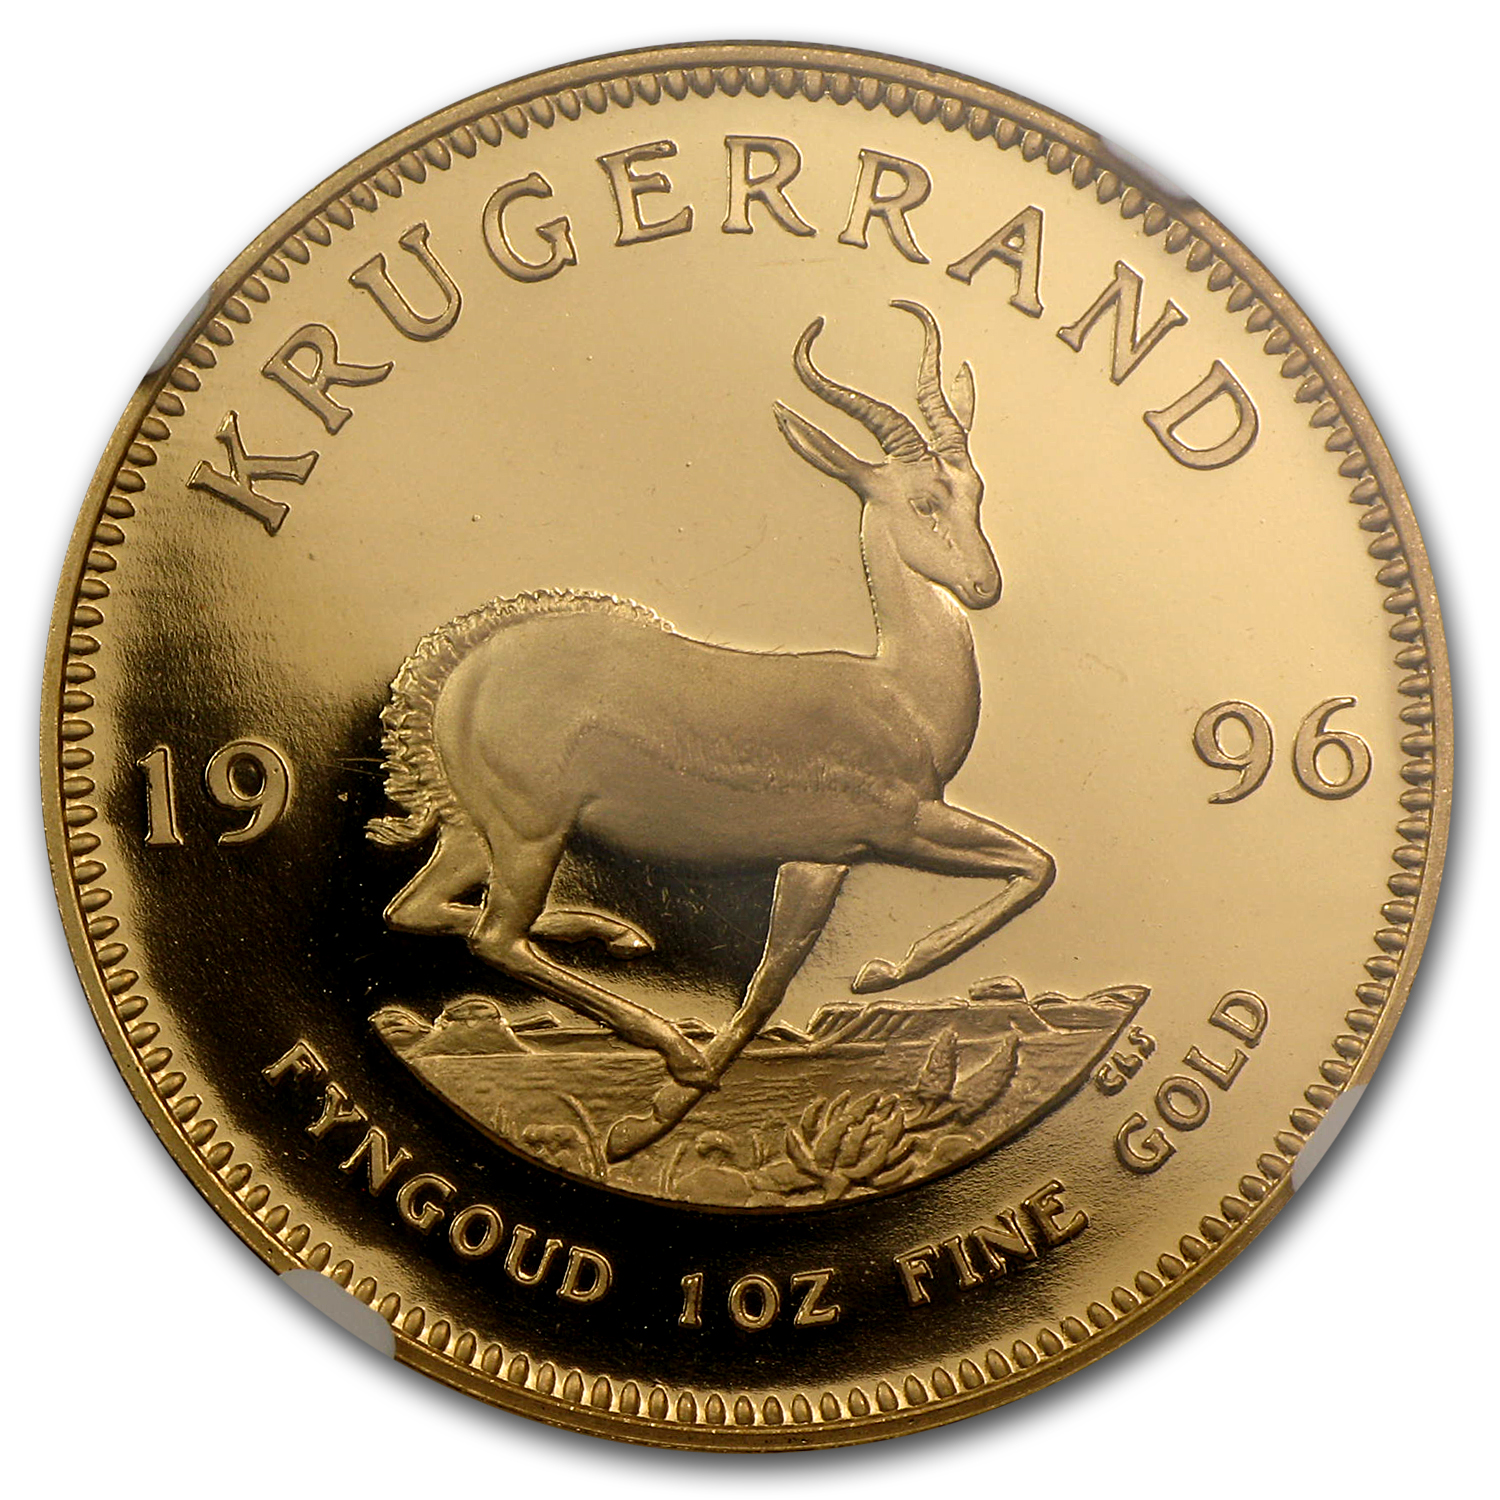 1996 South Africa 1 oz Gold Krugerrand PF-68 NGC